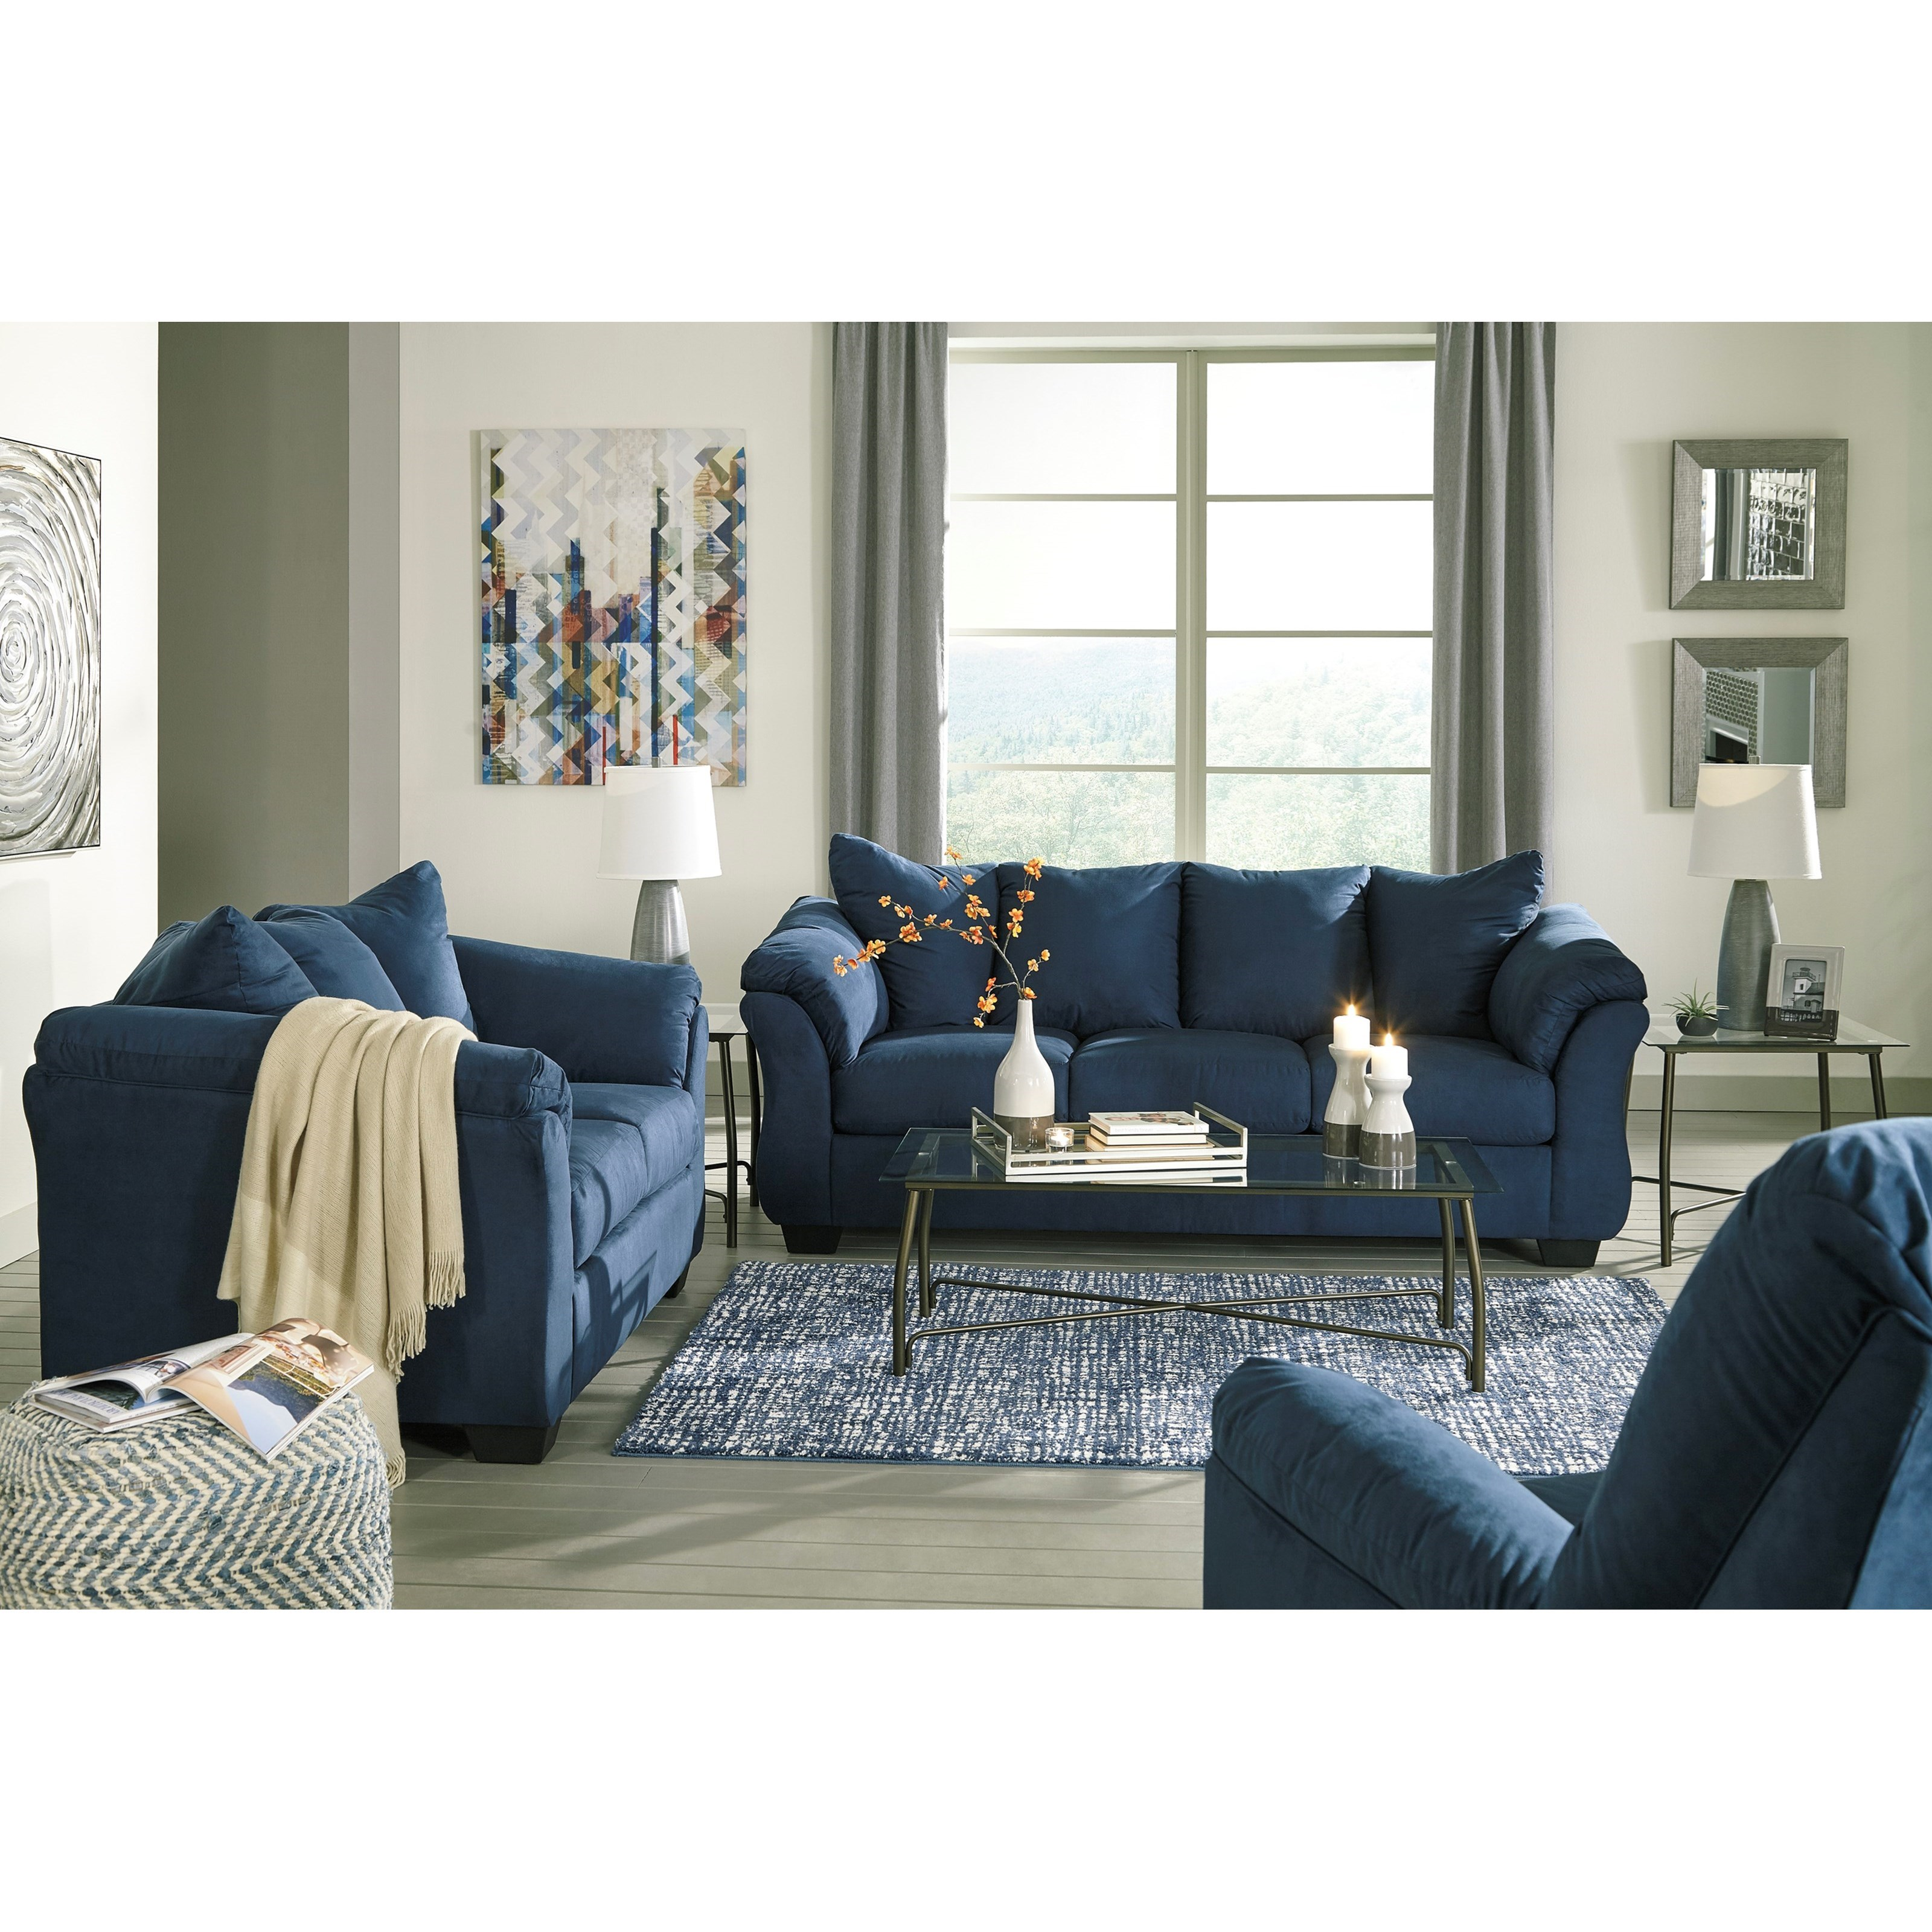 Ashley signature design darcy blue stationary living for Living room furniture groups